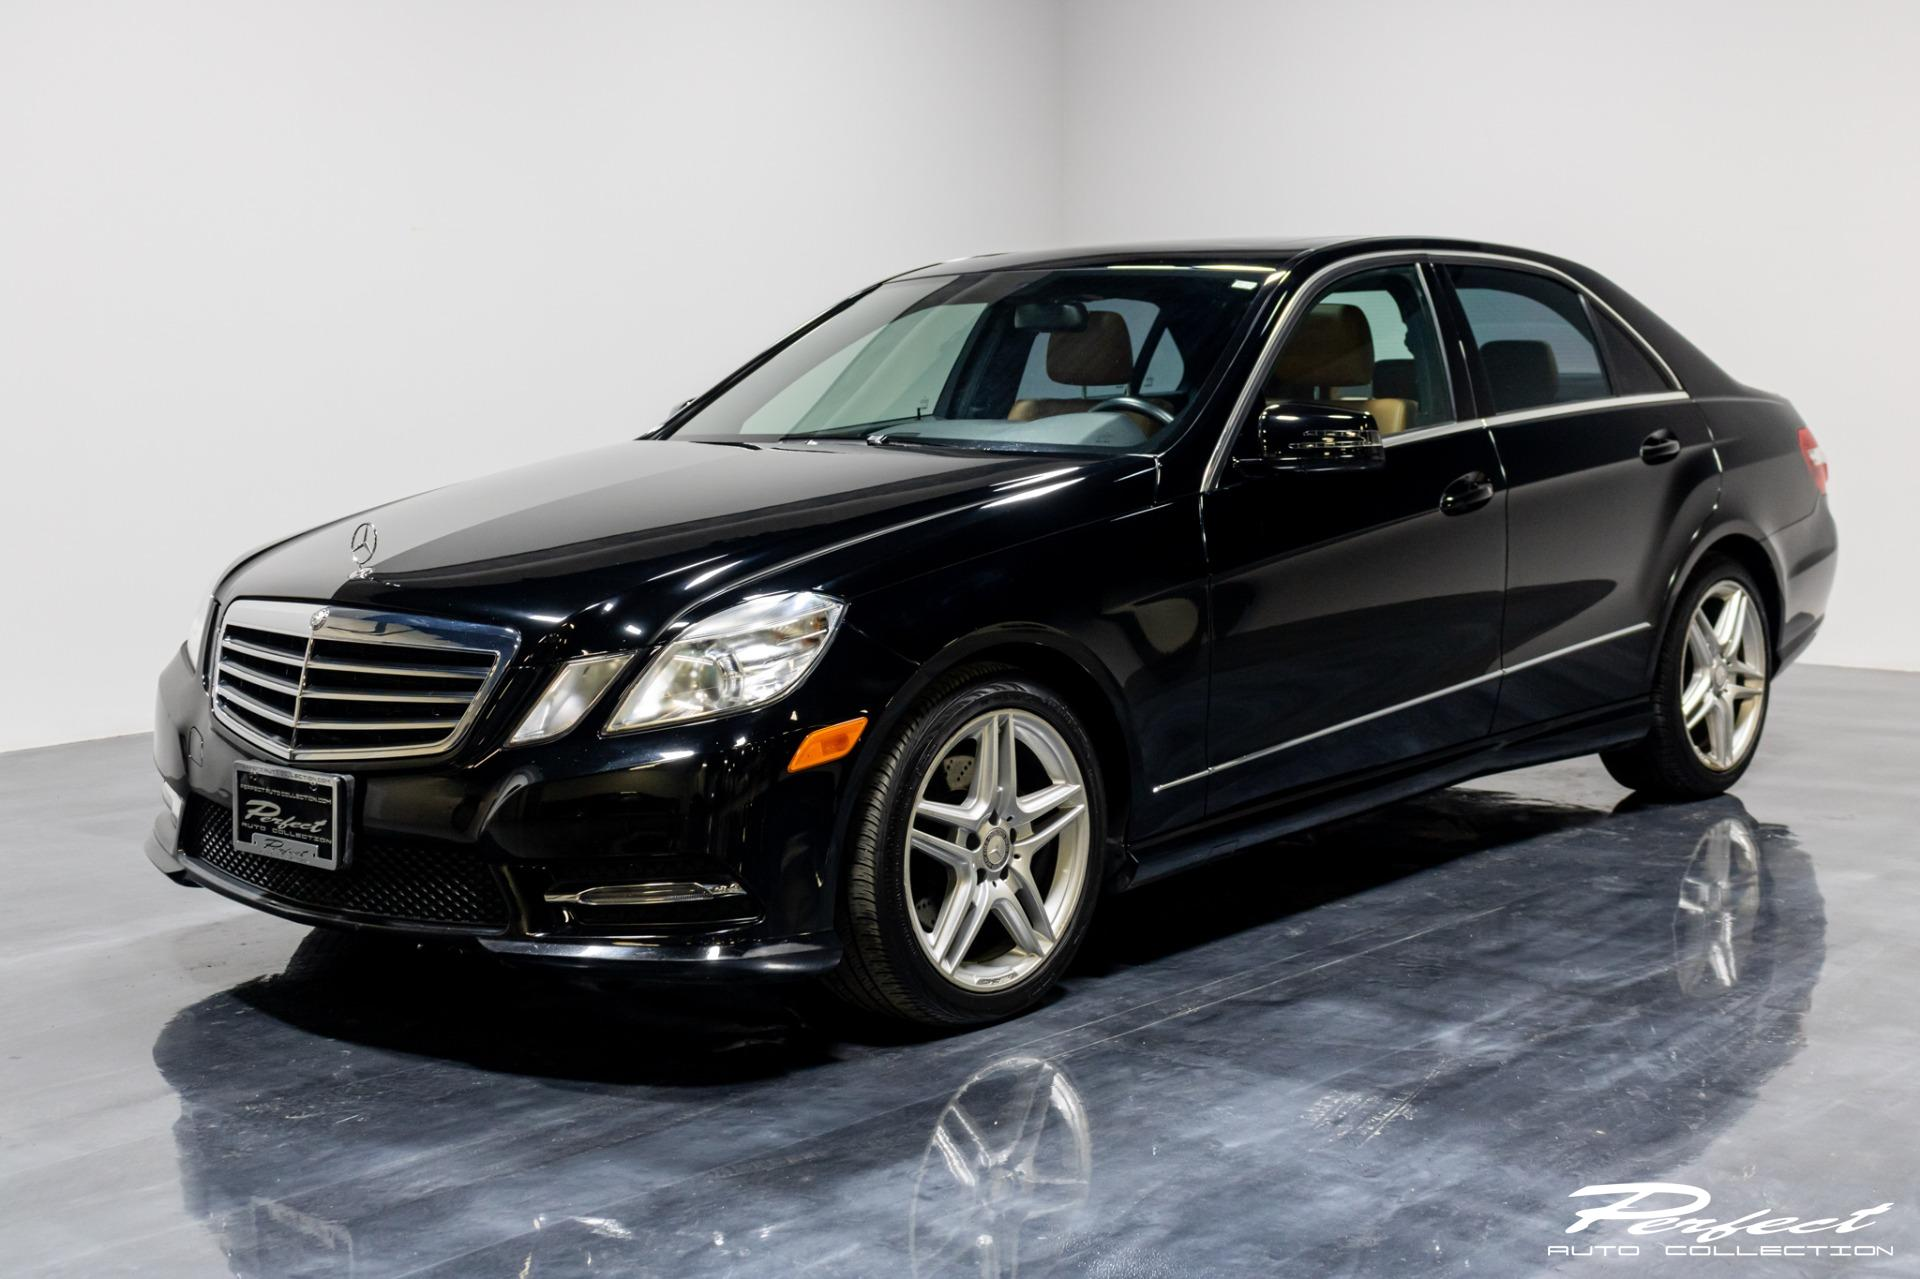 Used 2013 Mercedes-Benz E-Class E 350 Sport 4MATIC for sale Sold at Perfect Auto Collection in Akron OH 44310 1